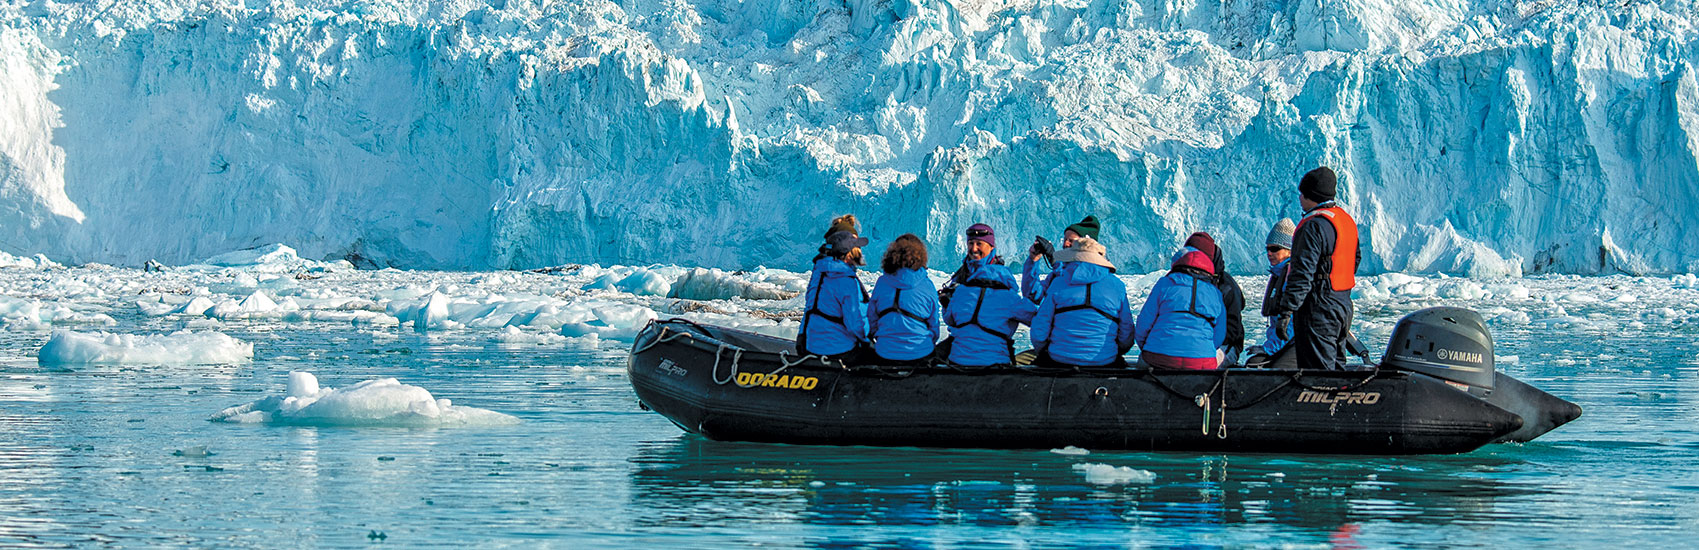 Expedition Savings with Adventure Canada 4